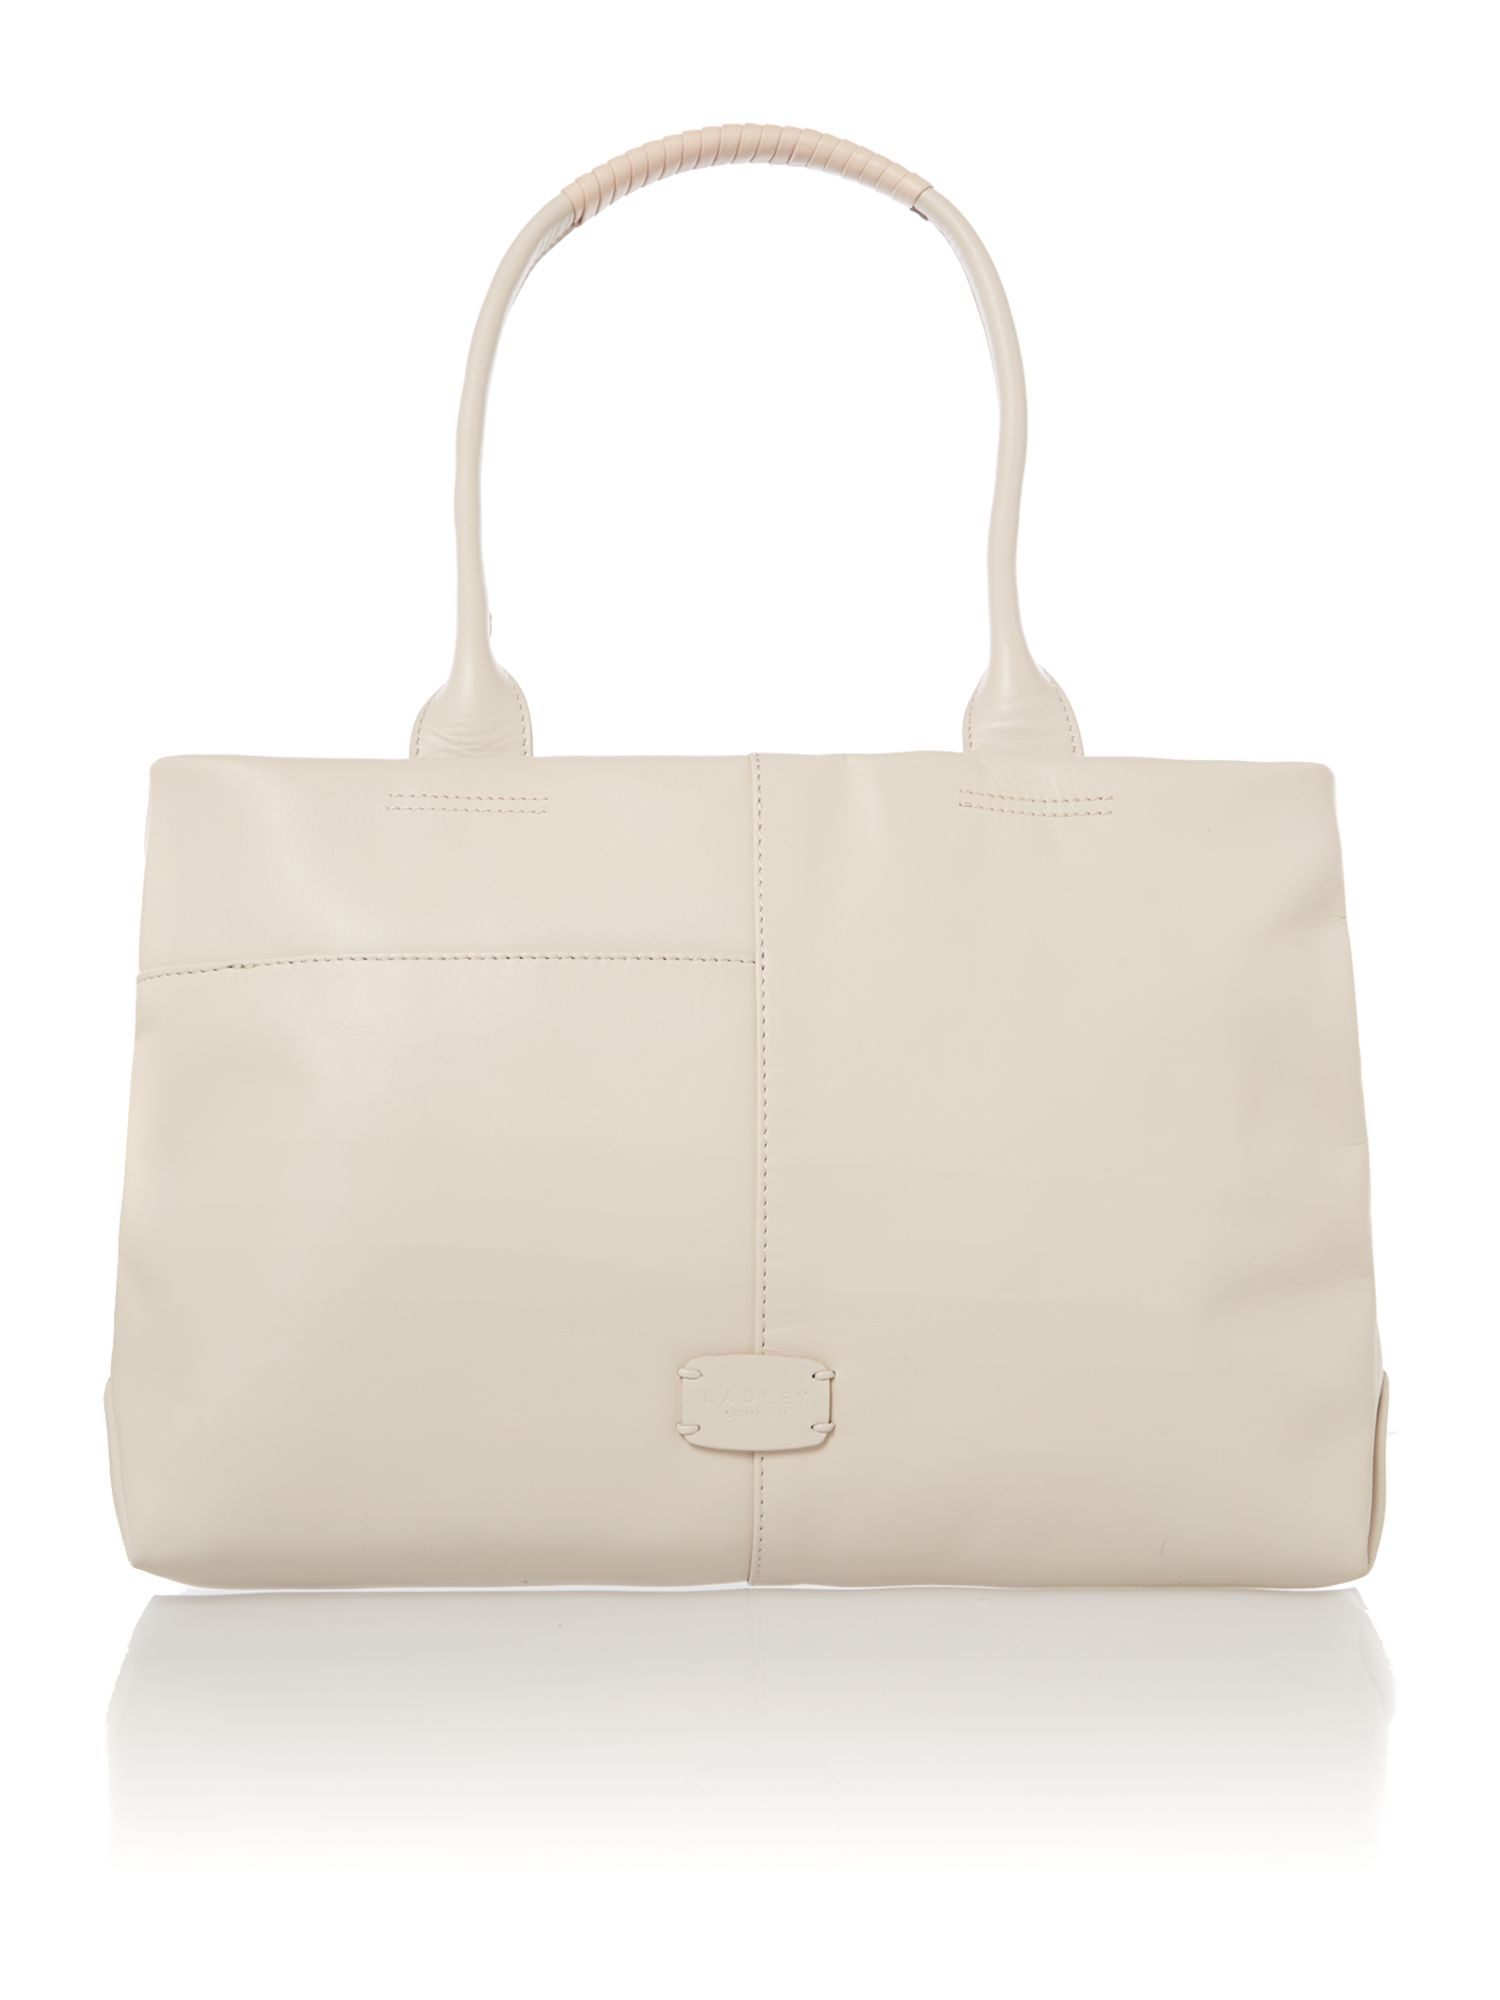 Bayford cream small leather tote bag